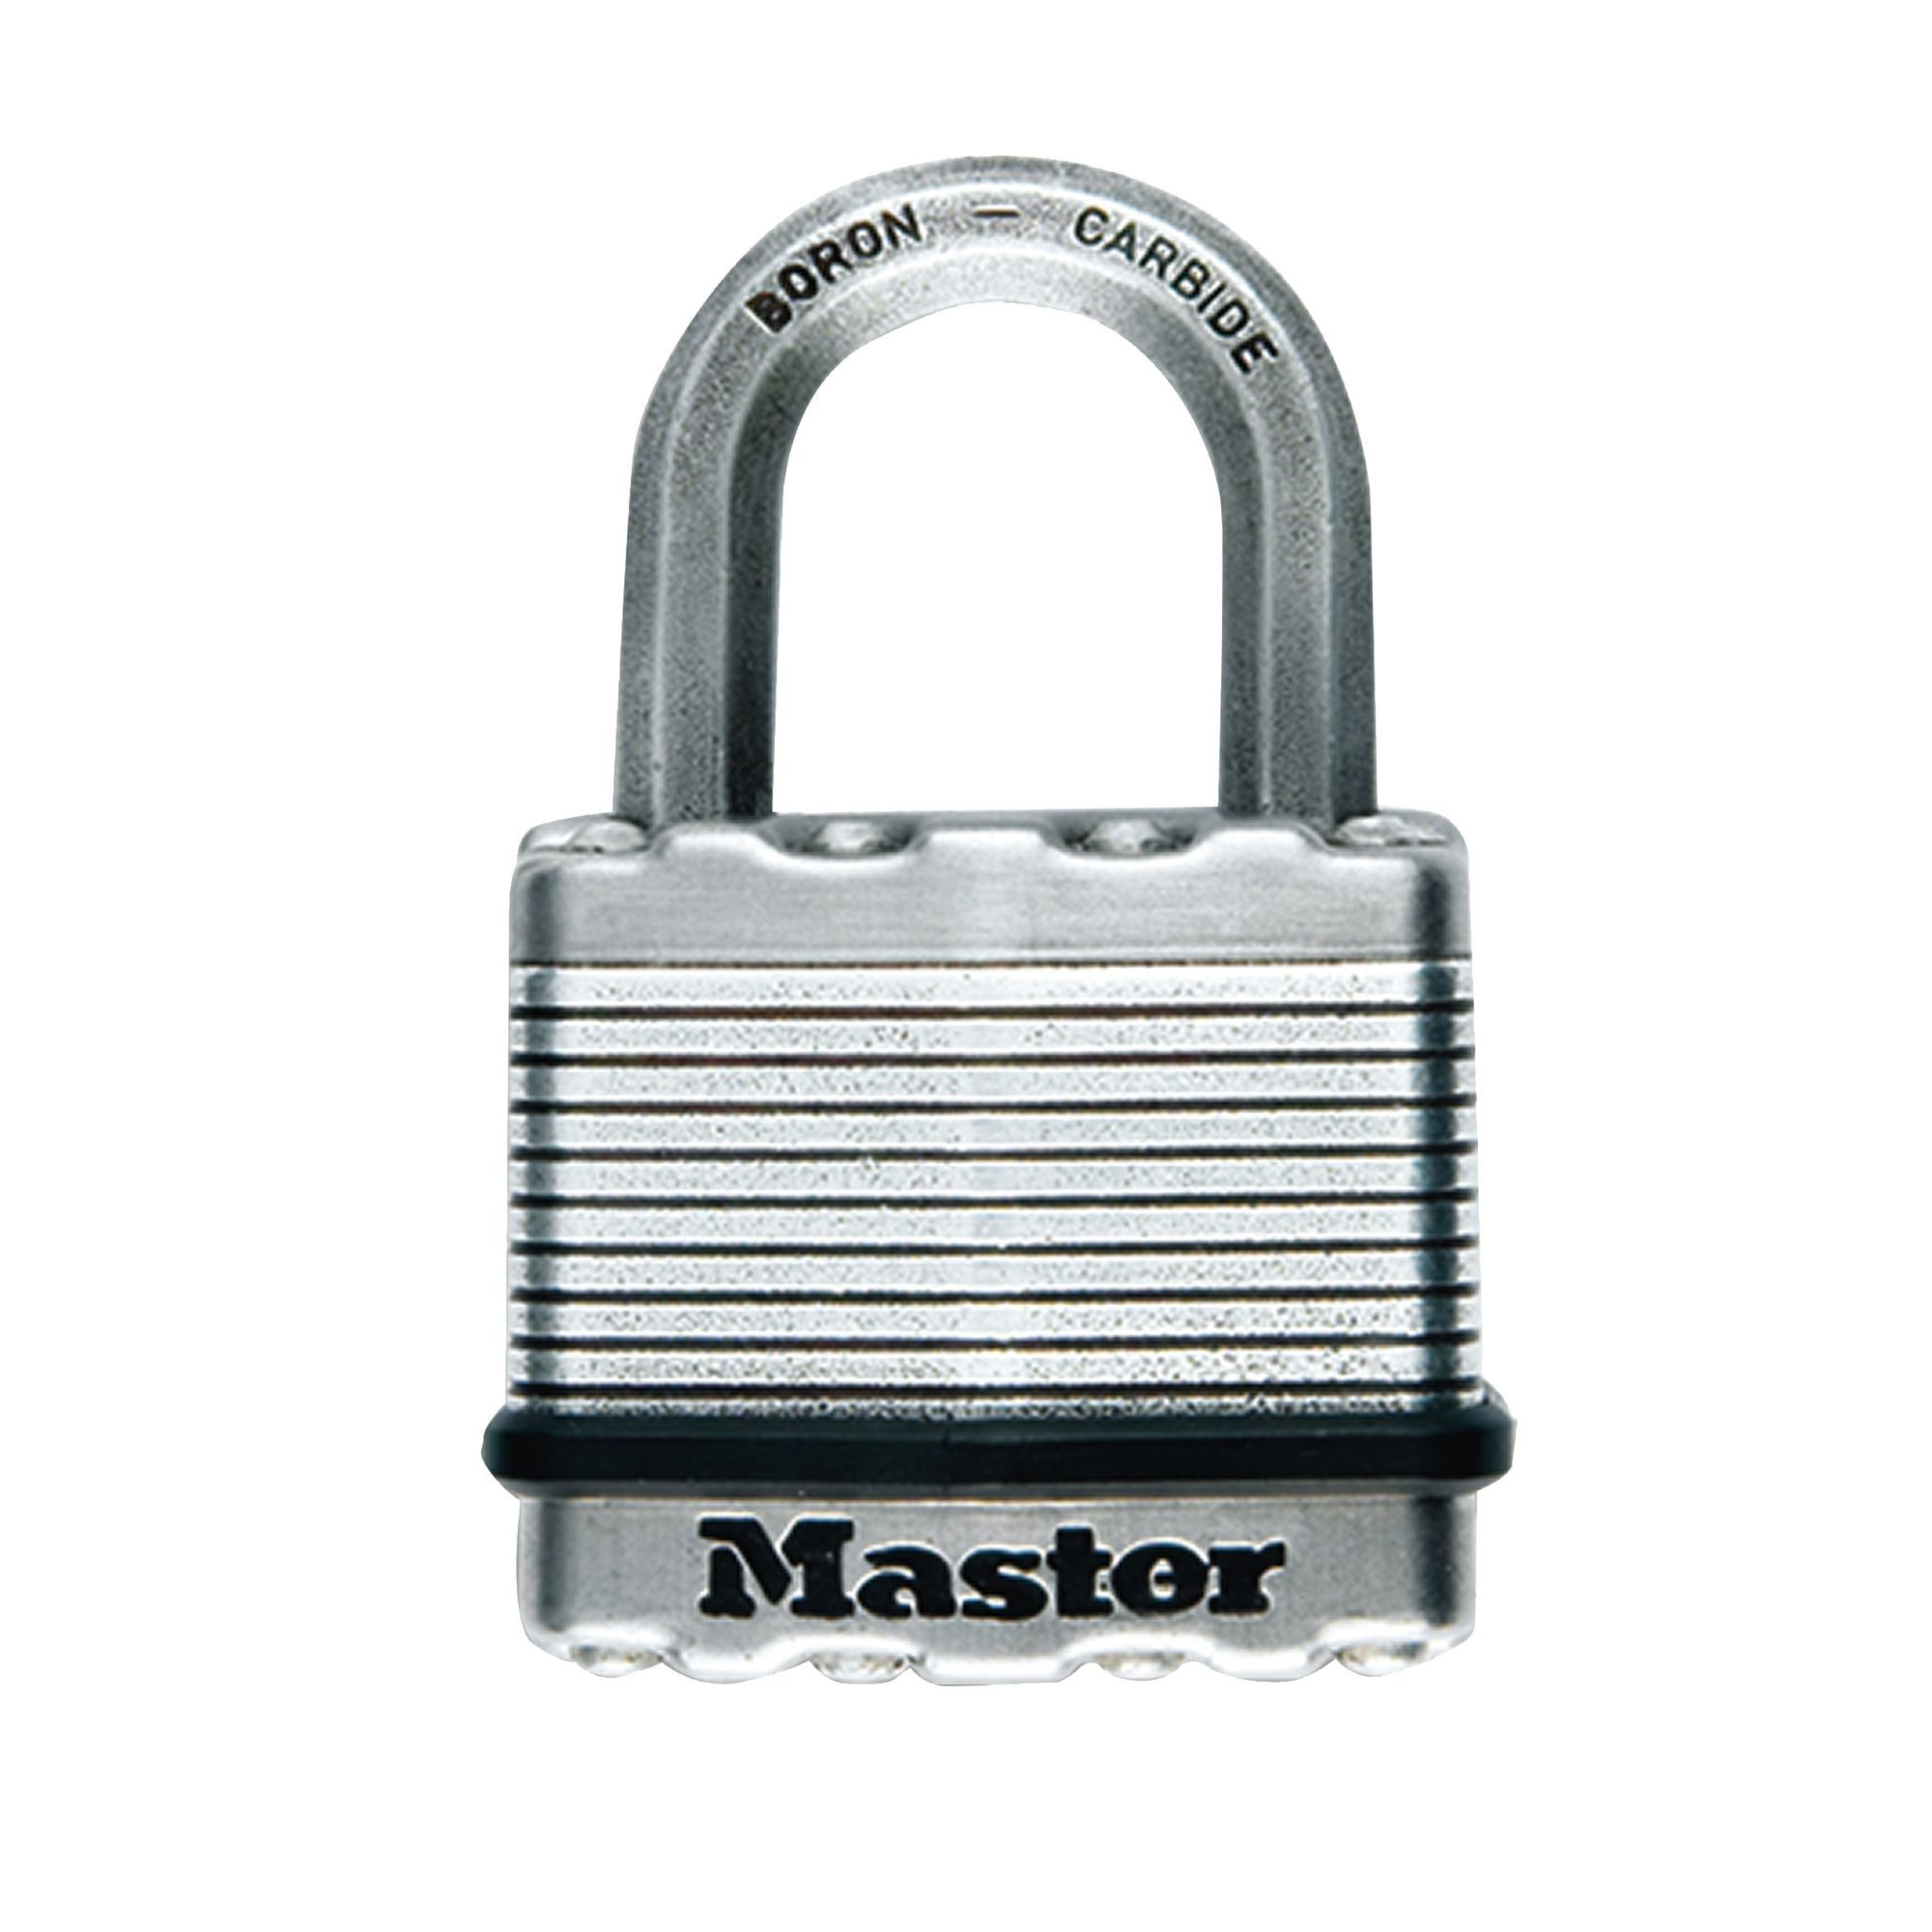 Master Lock Excell Stainless steel Double ball bearing locking Octagonal  open shackle Padlock (W)50mm | Departments | DIY at B&Q